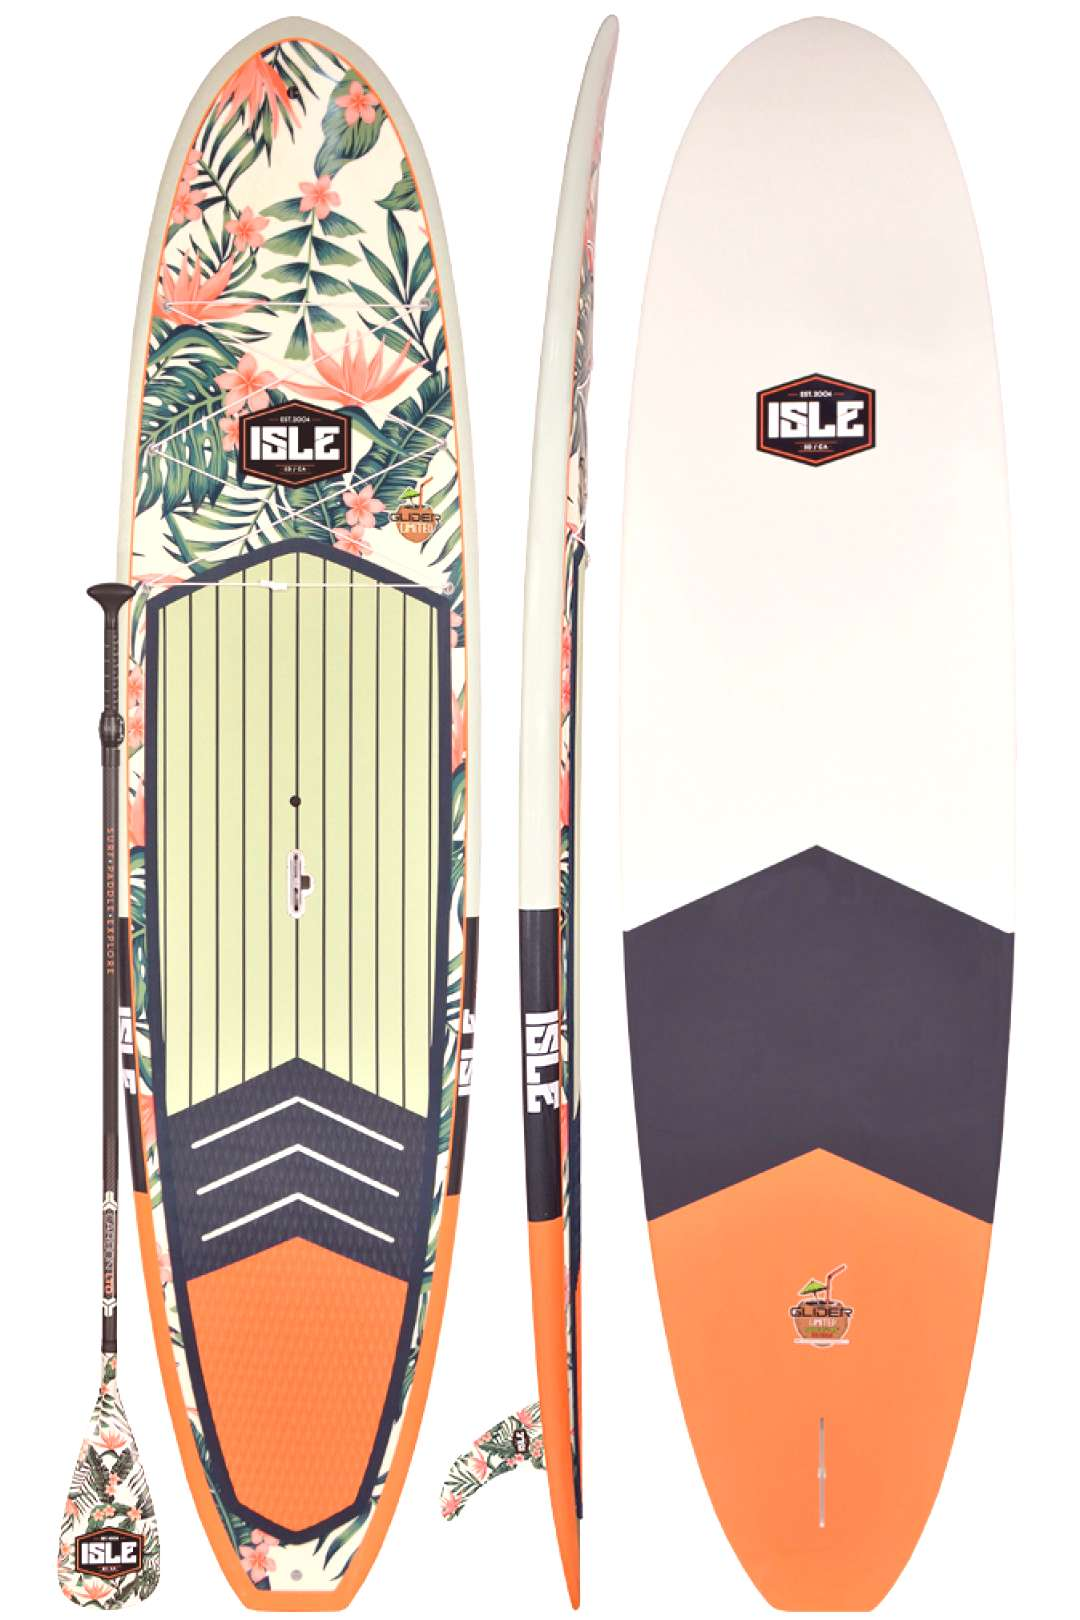 ISLE Limited Edition Glider All Water Paddle Board Package   ISLE Surf amp SUP